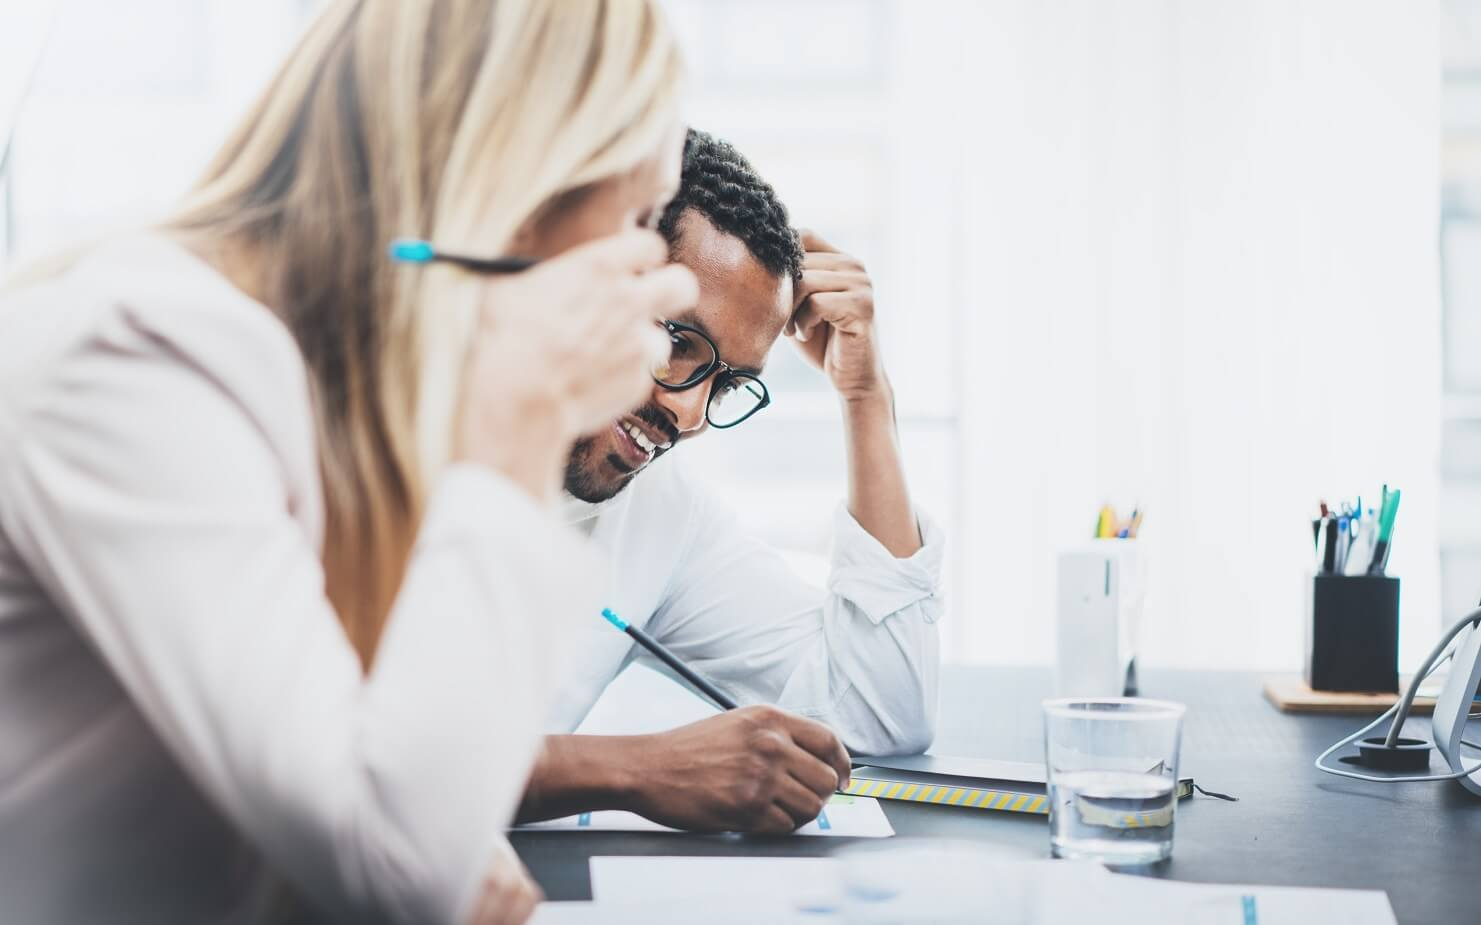 Tips & Co. - Have an unresponsive coworker?